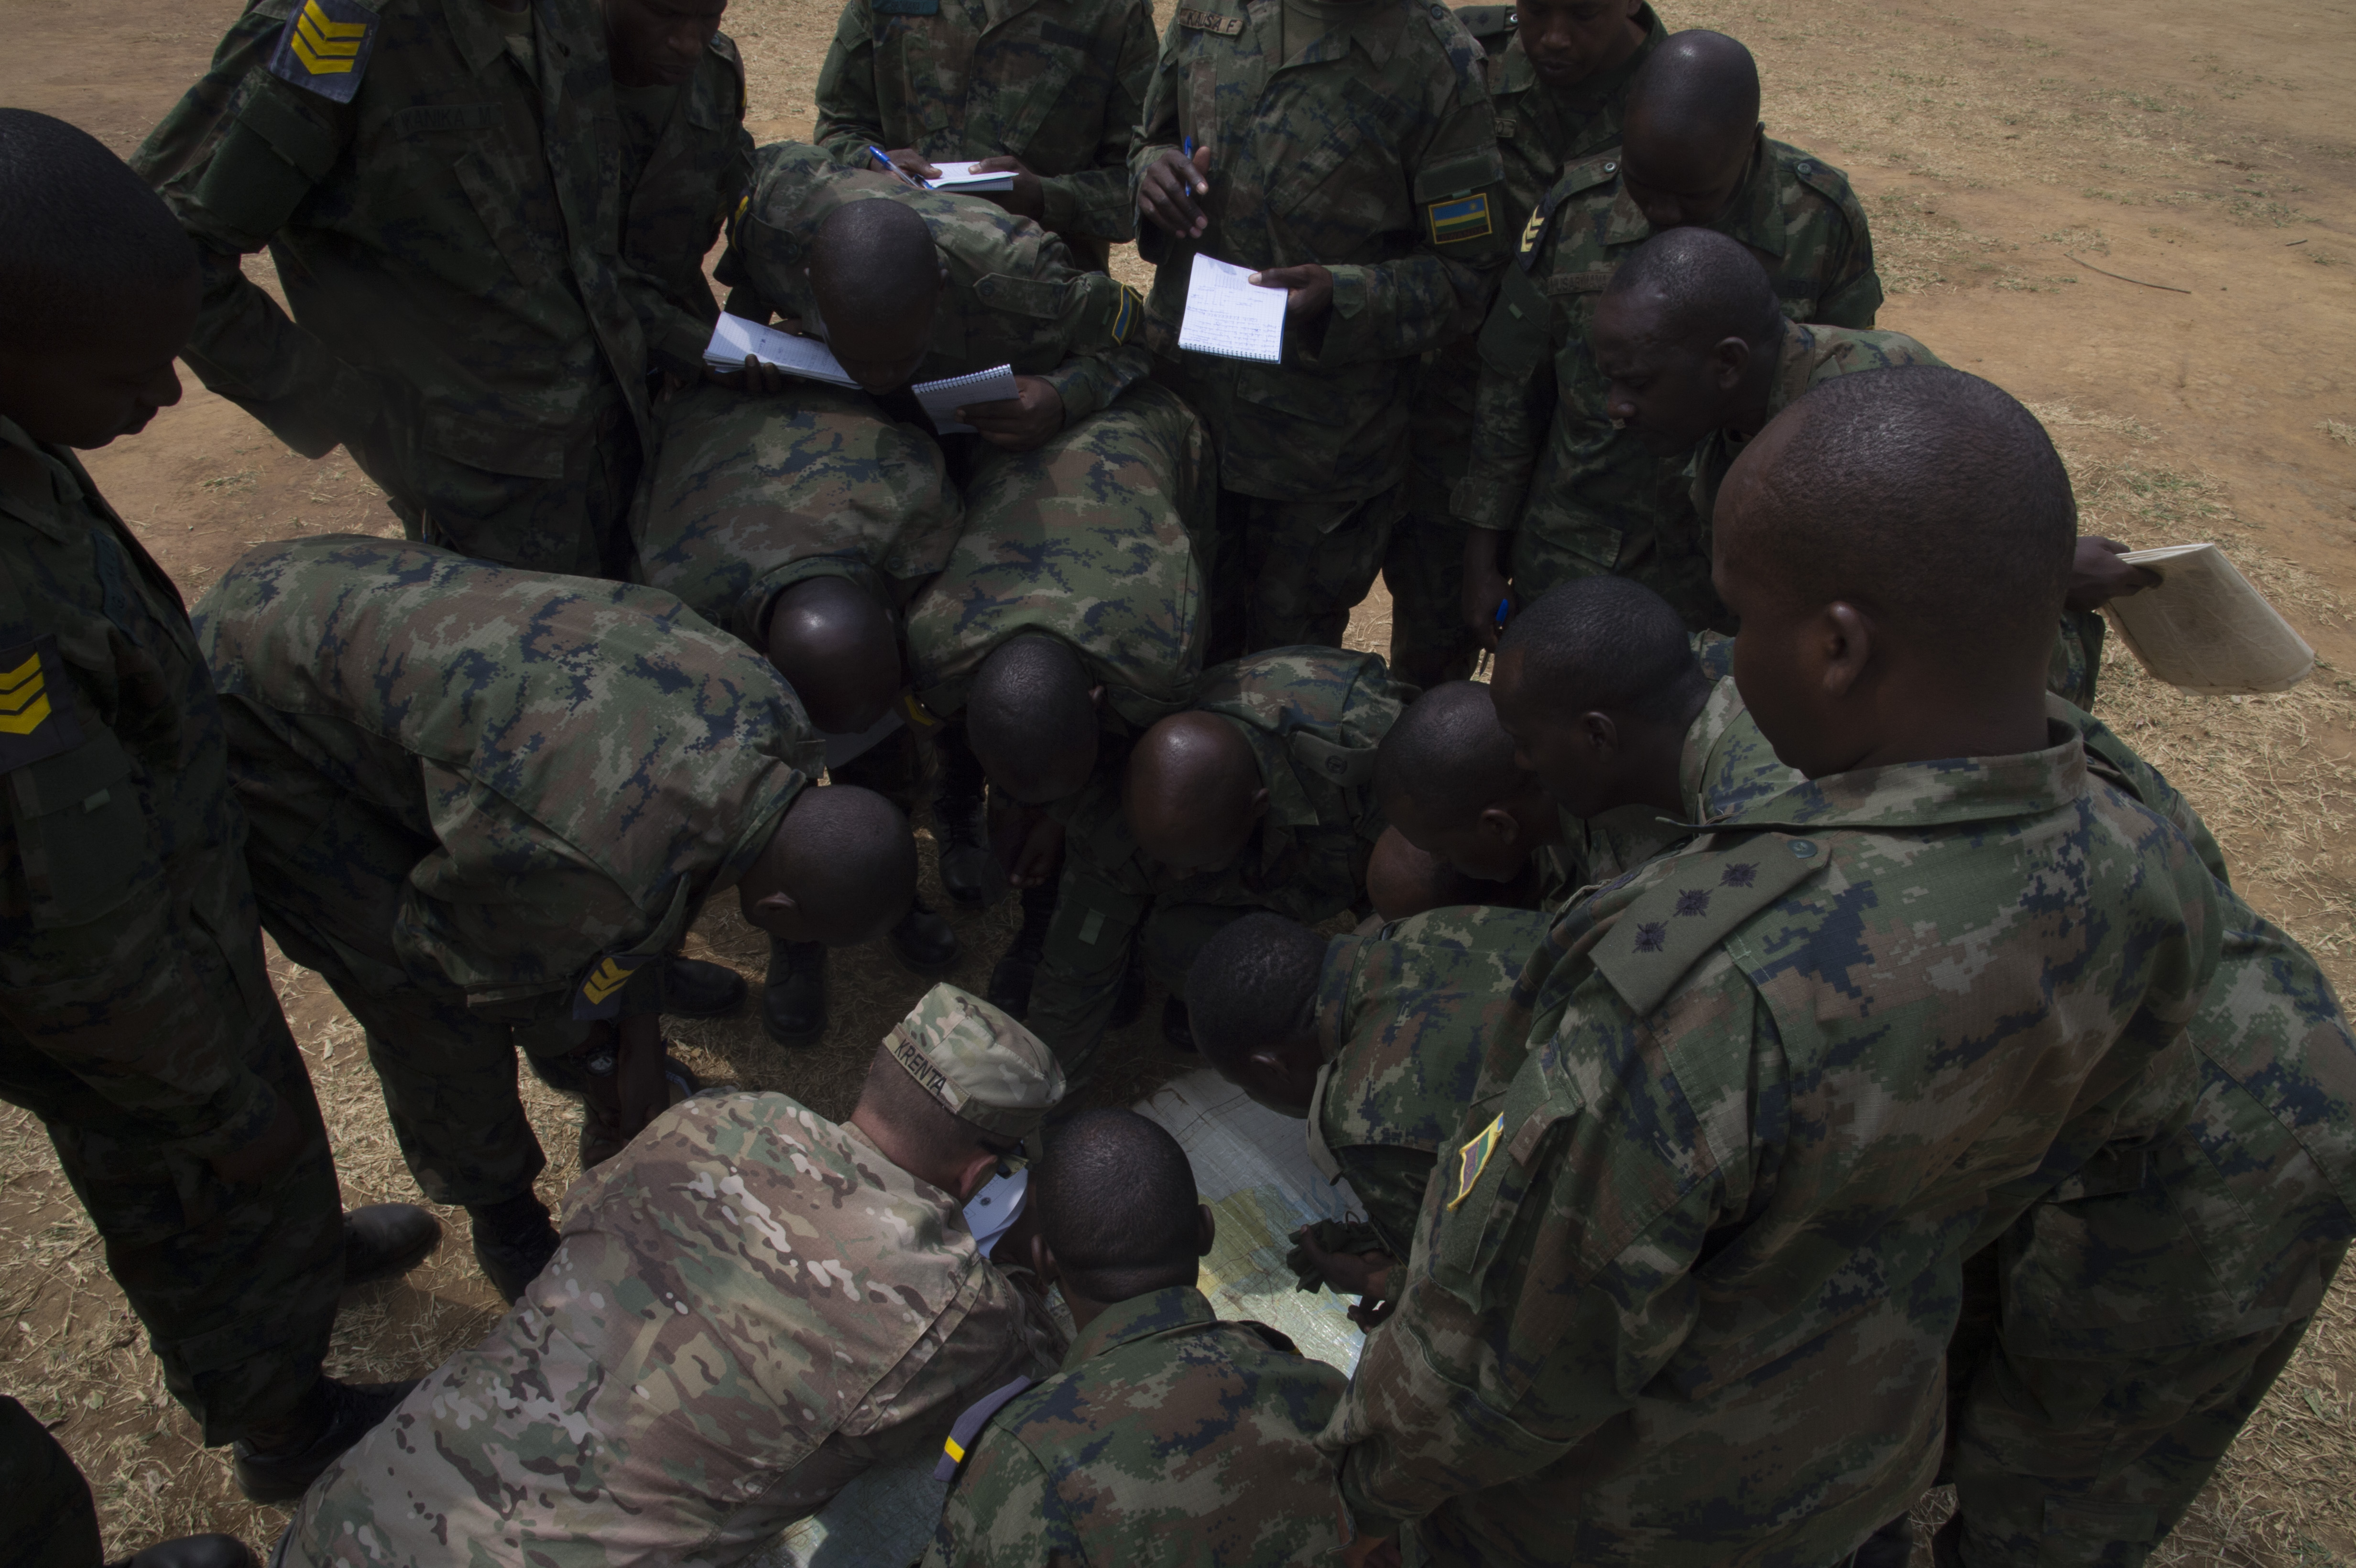 U.S. Army 1st Sgt. Jason Krenta, 1st Battalion, 124th Infantry Regiment, shows Rwanda Defense Force soldiers how to use a protractor and a map to plot grid coordinates Sept. 8, 2016, at the Rwanda Military Academy, Rwanda. Krenta, deployed to Combined Joint Task Force - Horn of Africa from the Florida Army National Guard, was part of a two-man team to observe and provide advice during a Rwandan noncommissioned officer leadership course. (U.S. Air Force photo by Staff Sgt. Eric Summers Jr.)